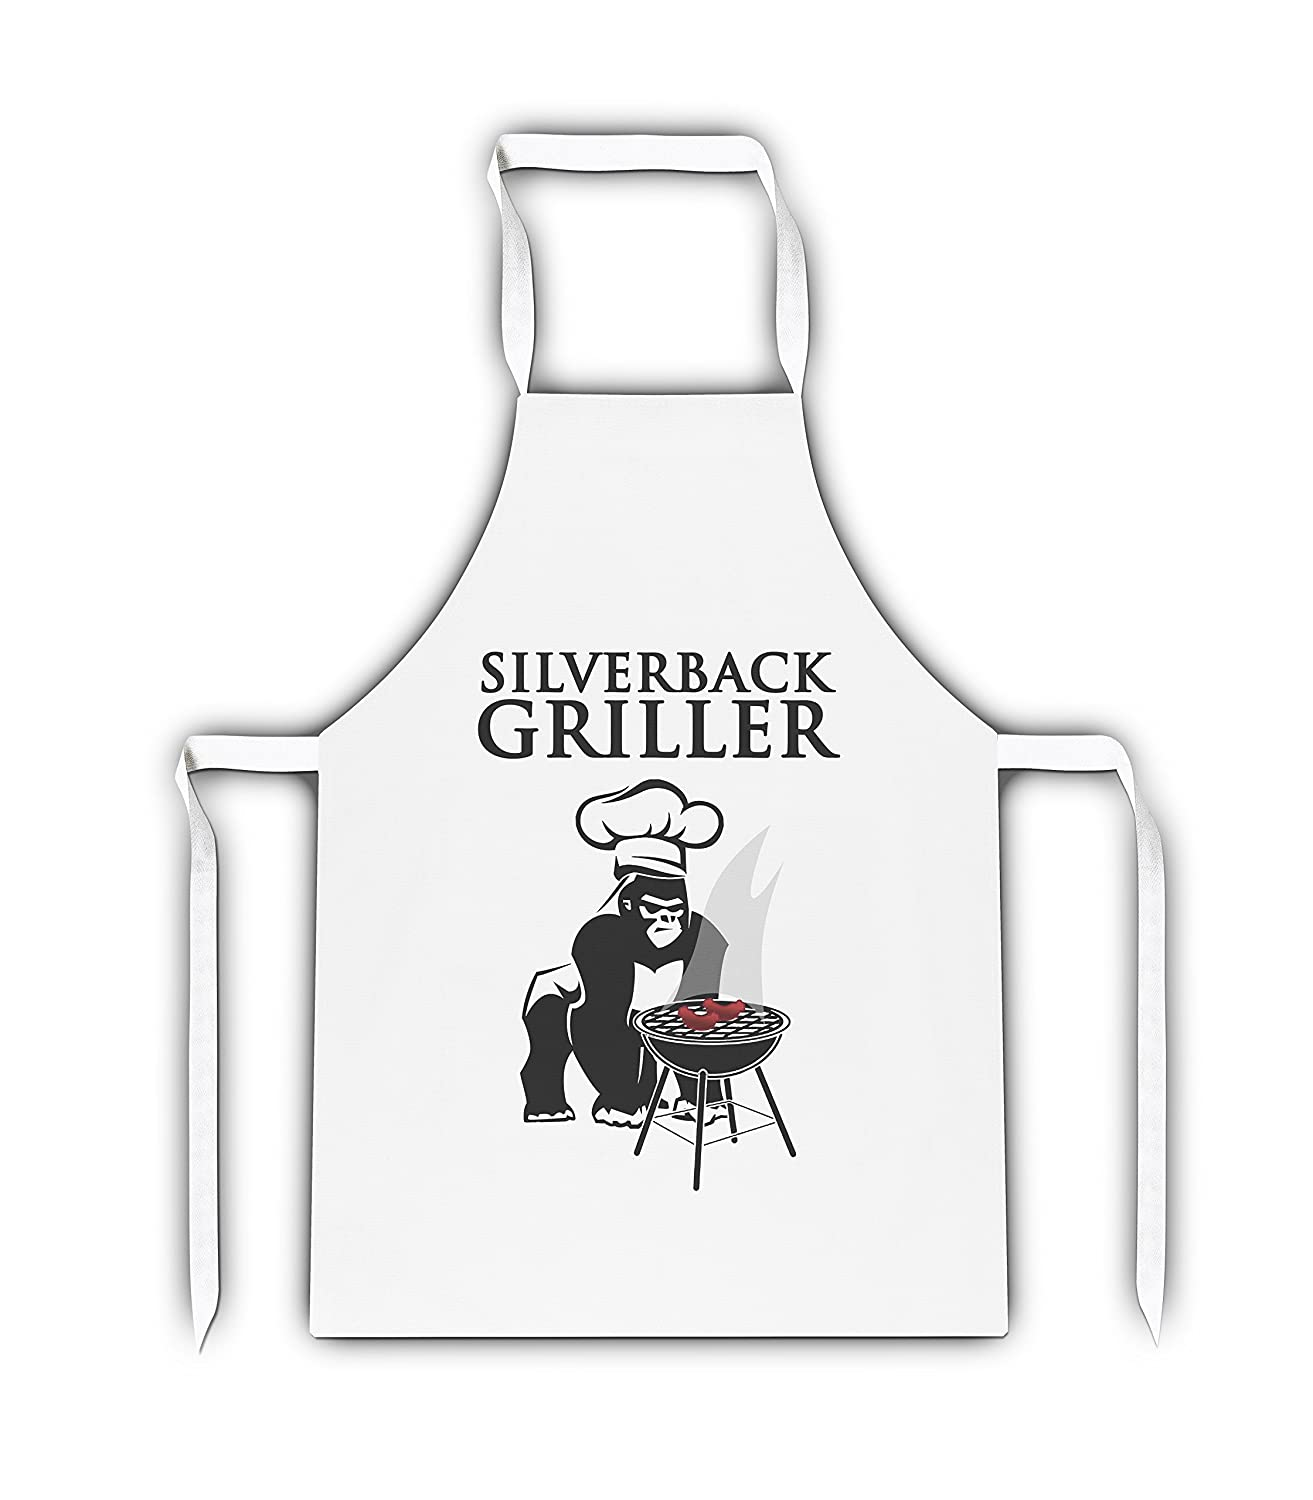 Silverback Griller Funny Novelty White Adult Apron